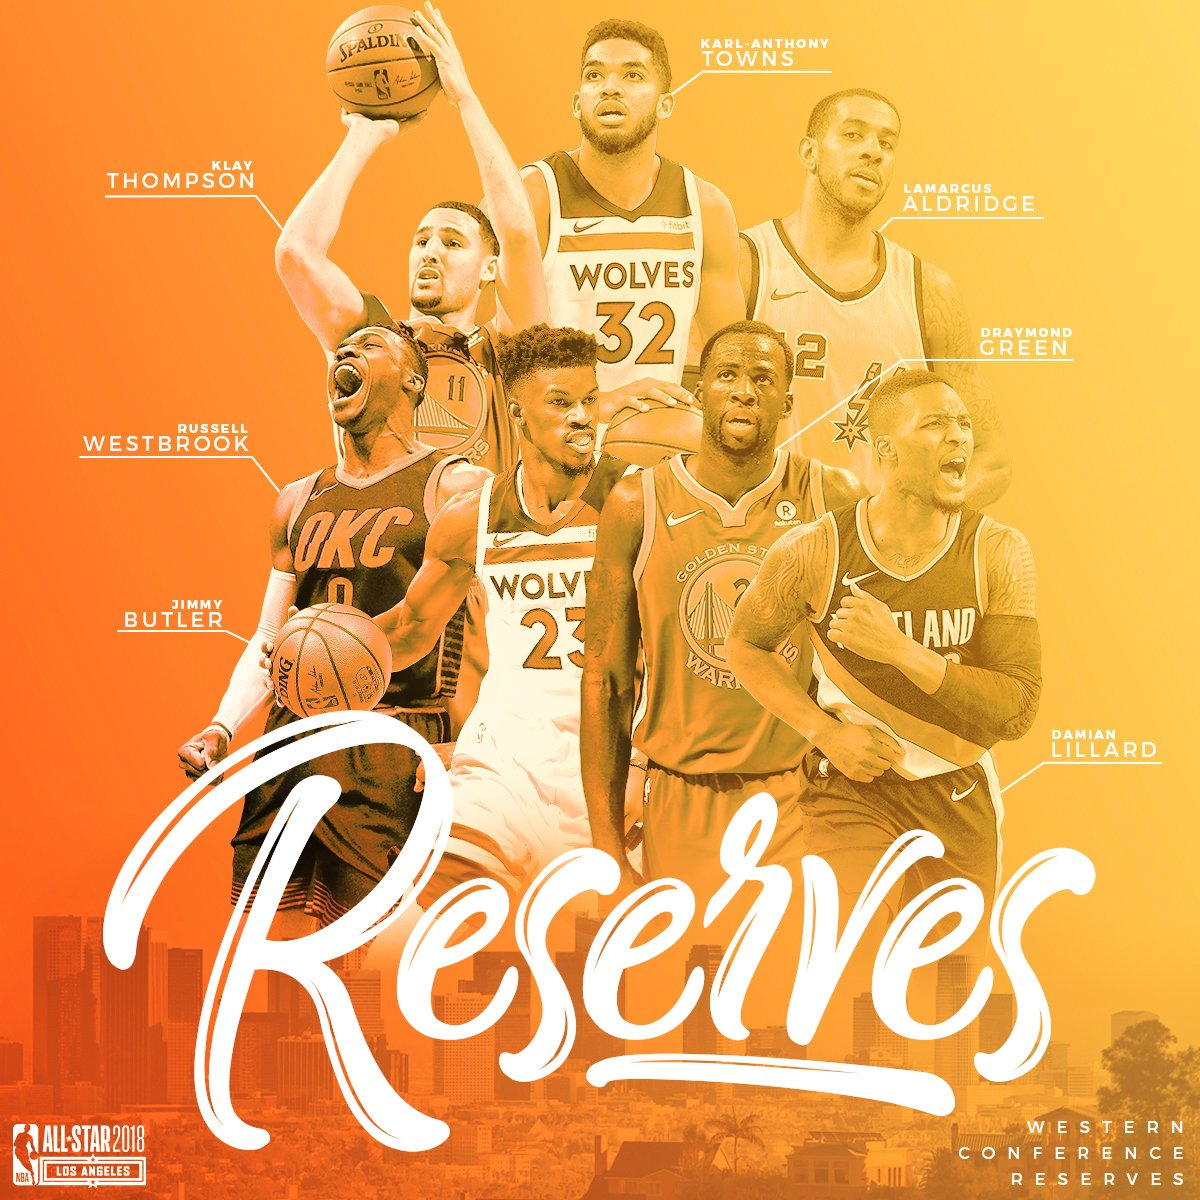 Here are your 2018 #NBAAllStar Reserves from the Western Conference!